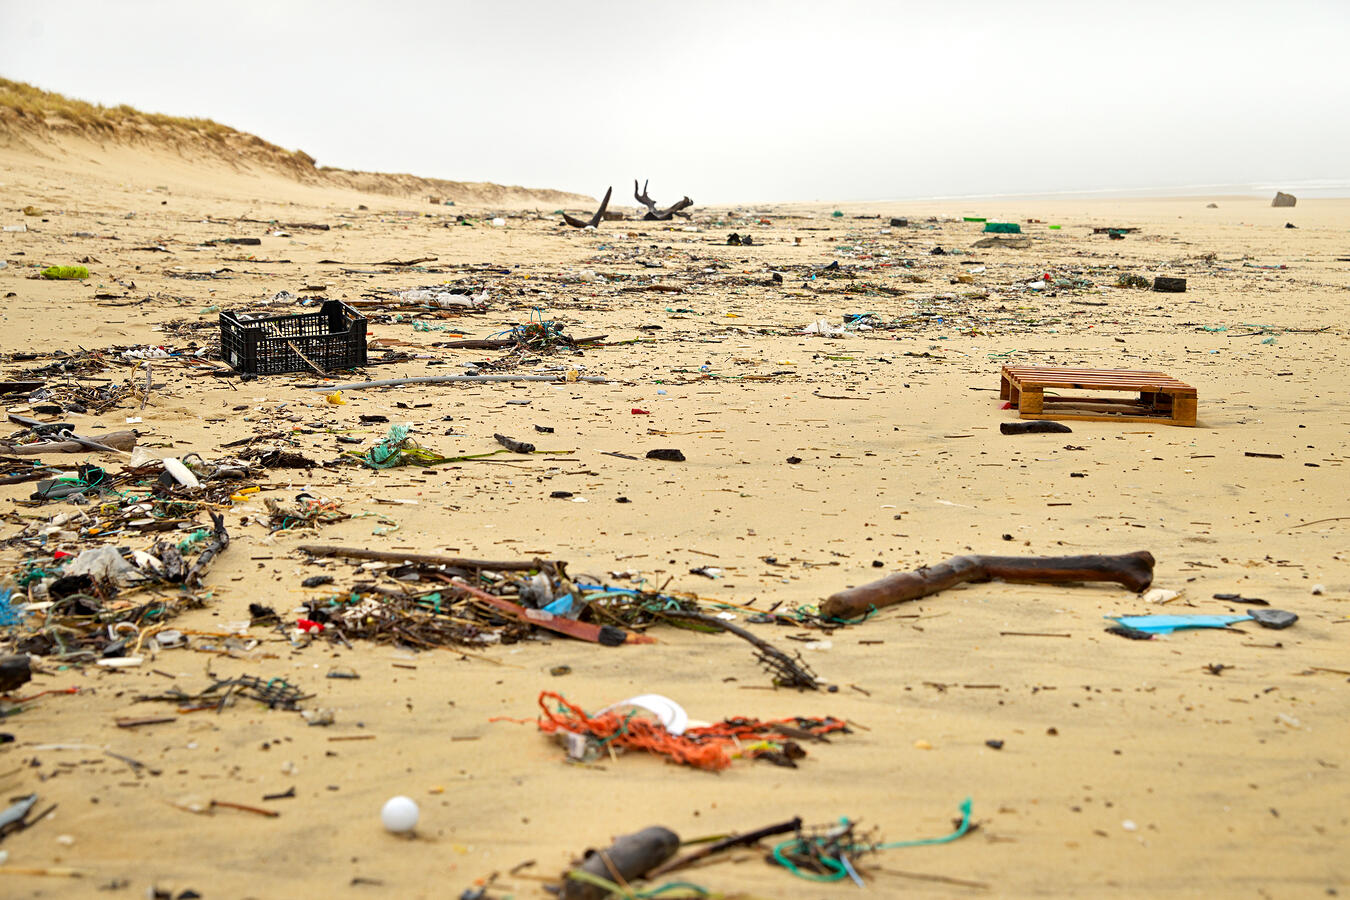 Beach Trash showing the effects of throw-away culture on the enf